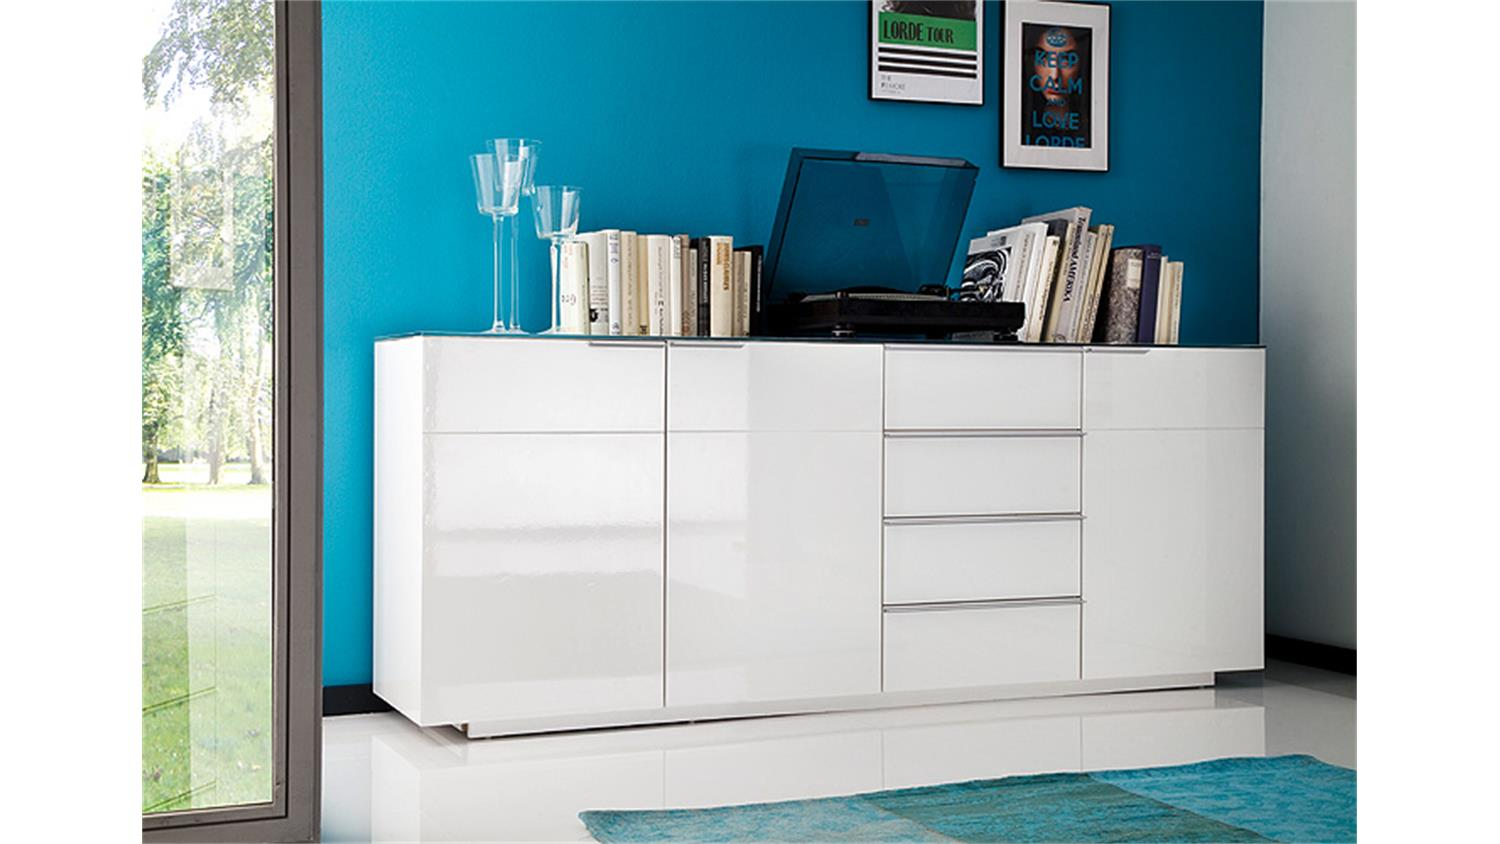 sideboard 2 canberra wei hochglanz lackiert glasplatte. Black Bedroom Furniture Sets. Home Design Ideas